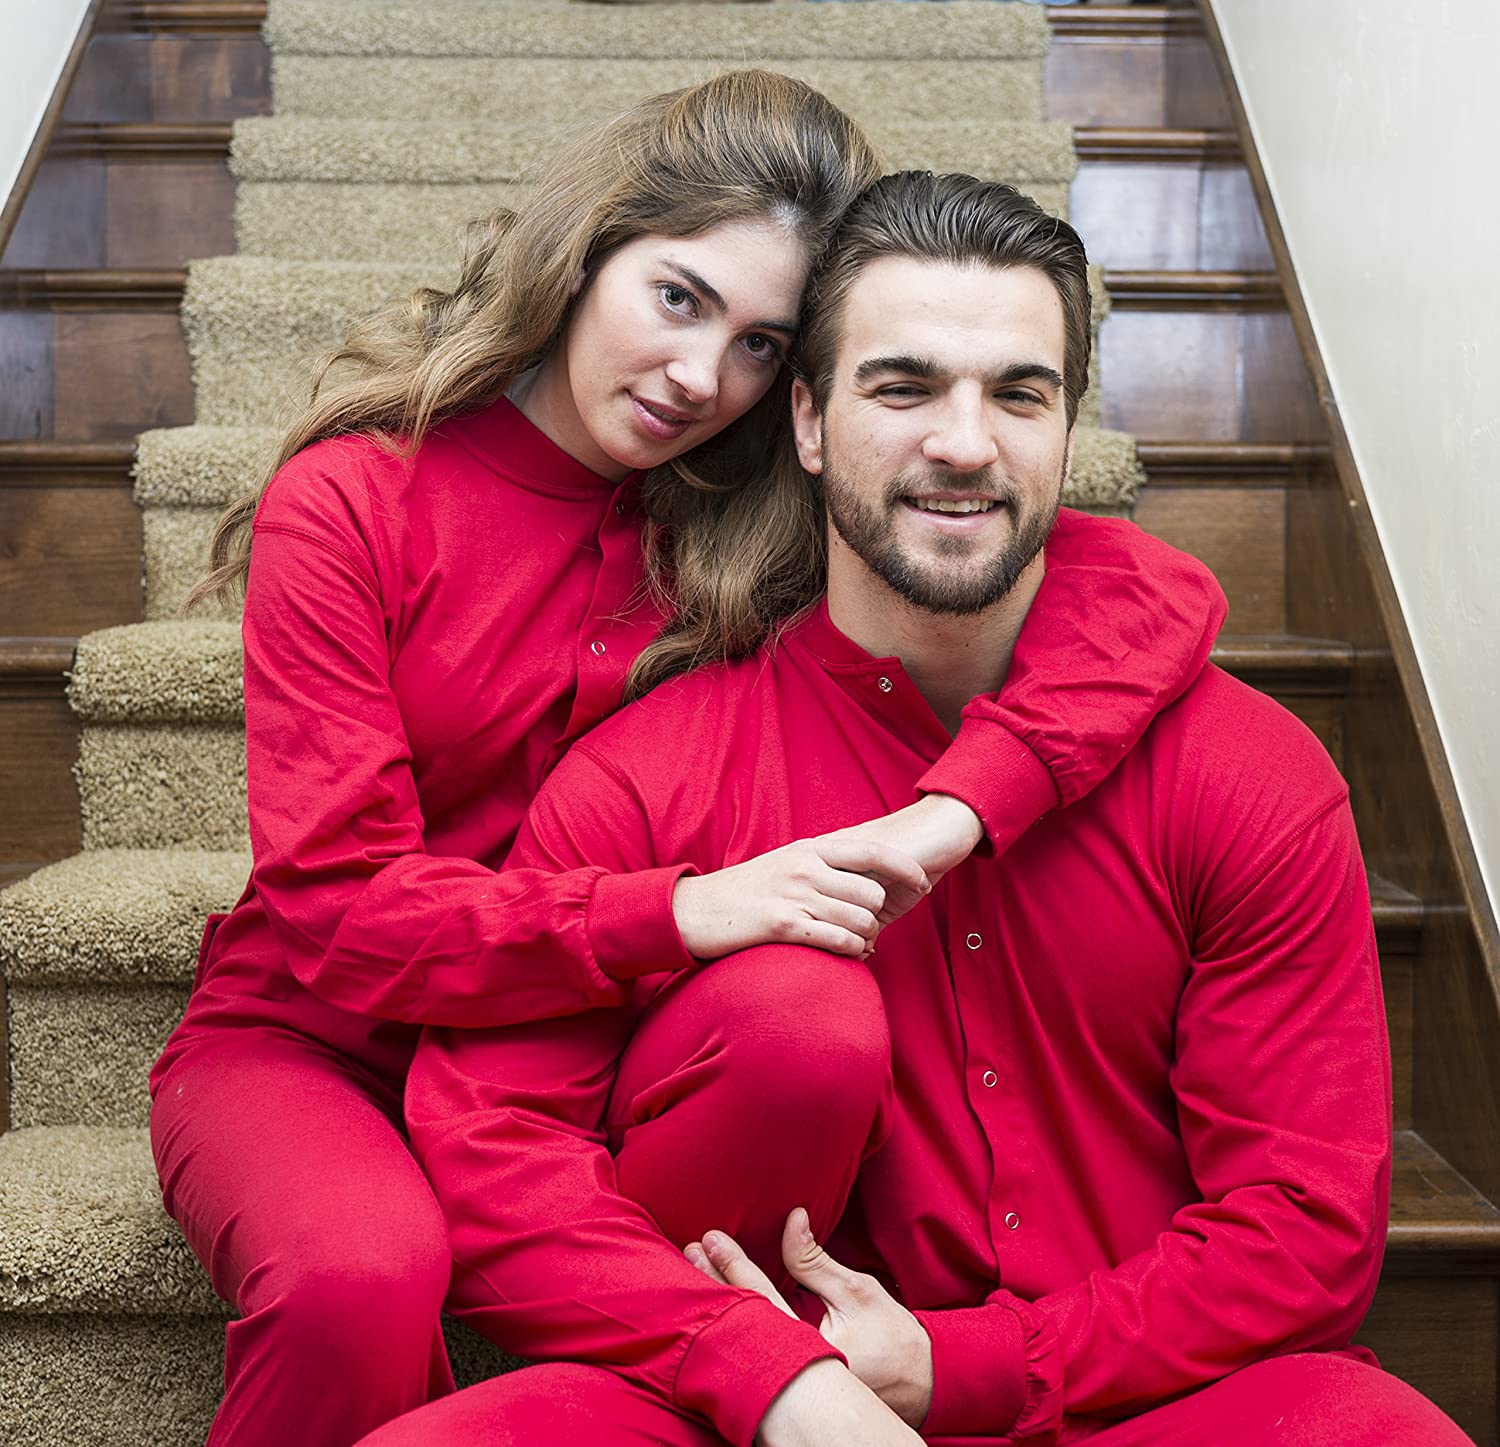 Red union suit onesie pajamas with funny butt flap no entry for men women  at amazon 82756c2e1